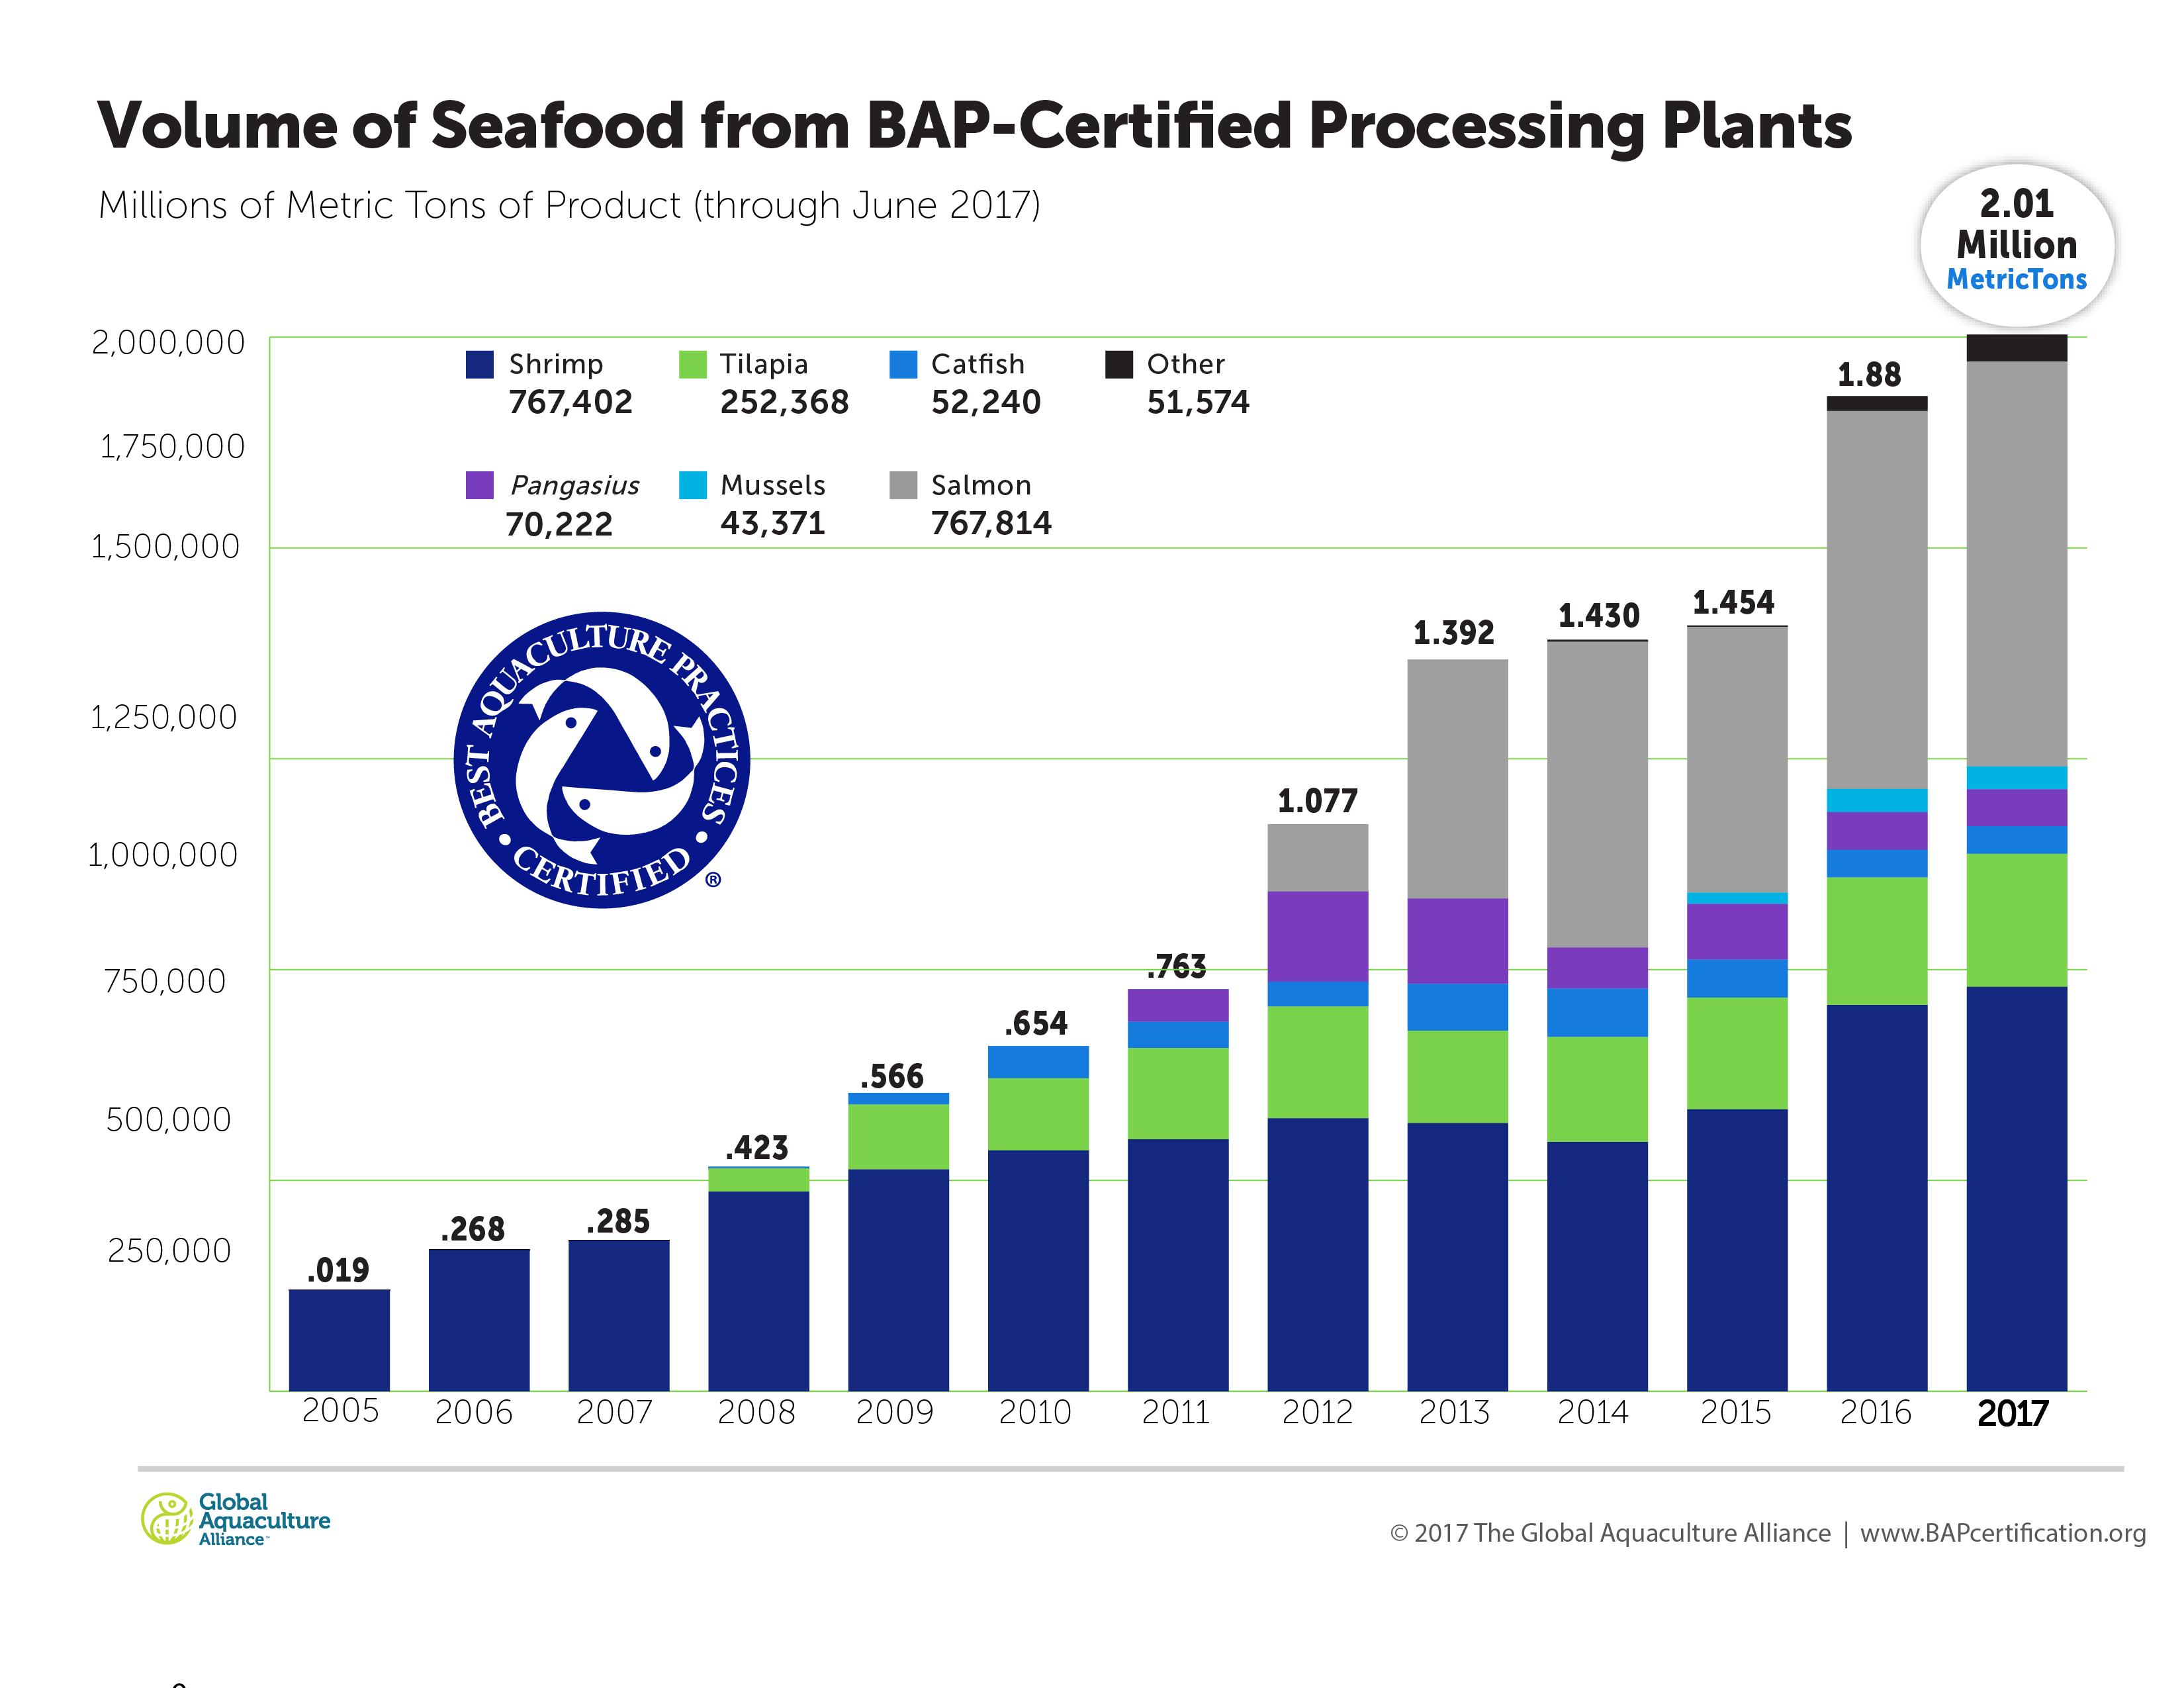 Volume of Seafood from BAP Certified Processing Plants